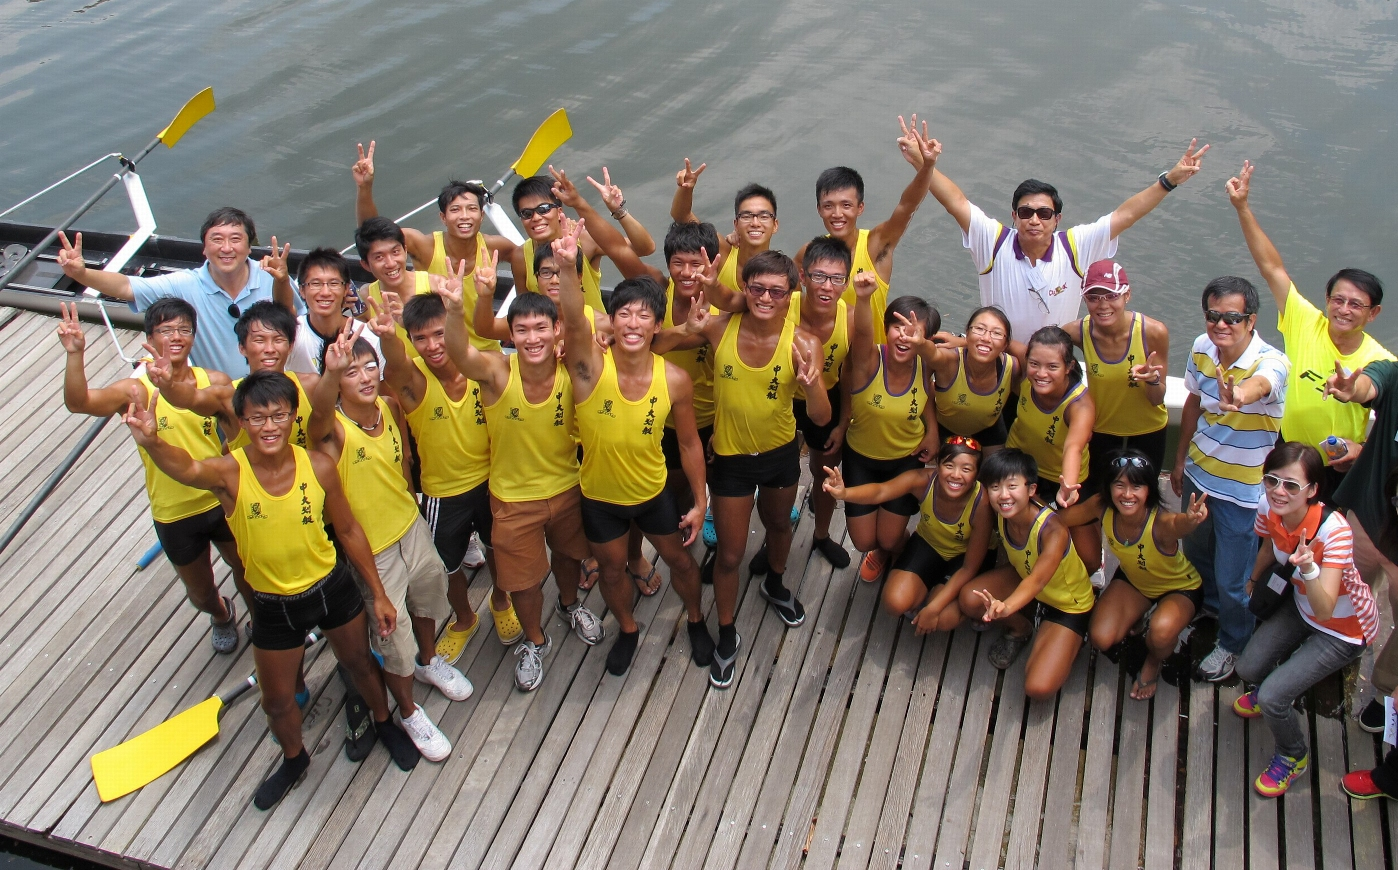 Mr. Lo Yuen-cheong with the CUHK rowing team.